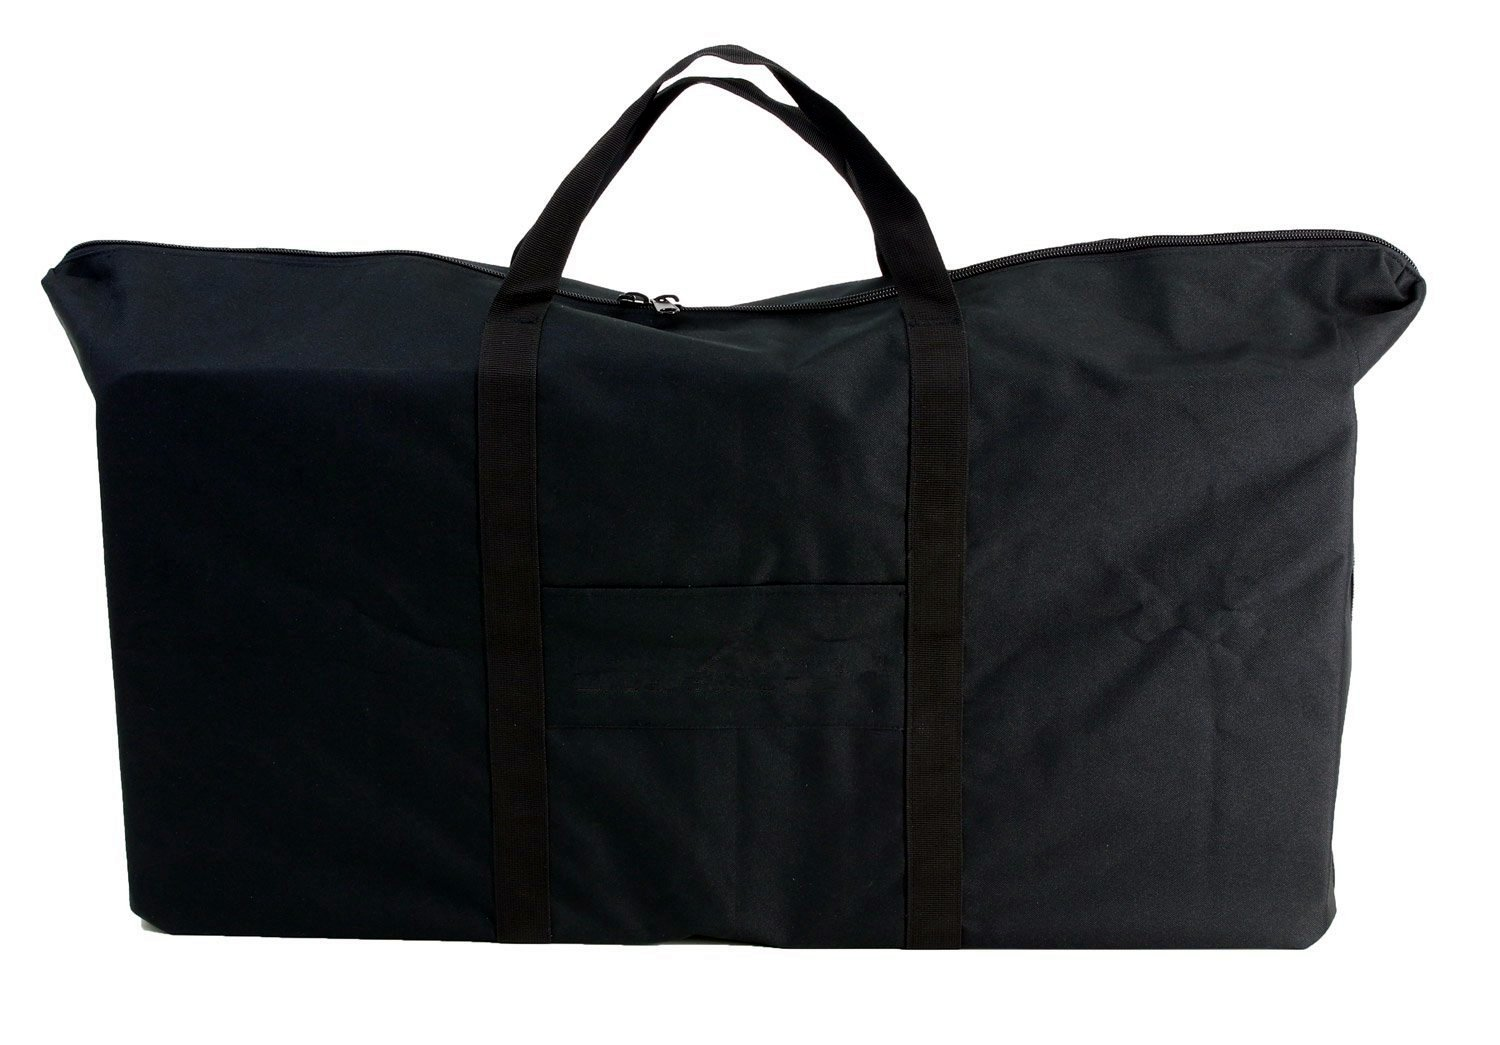 soldbbq Grill/Griddle Carry Bag, For Blackstone 36-Inch Griddle Top or Grill Top by soldbbq